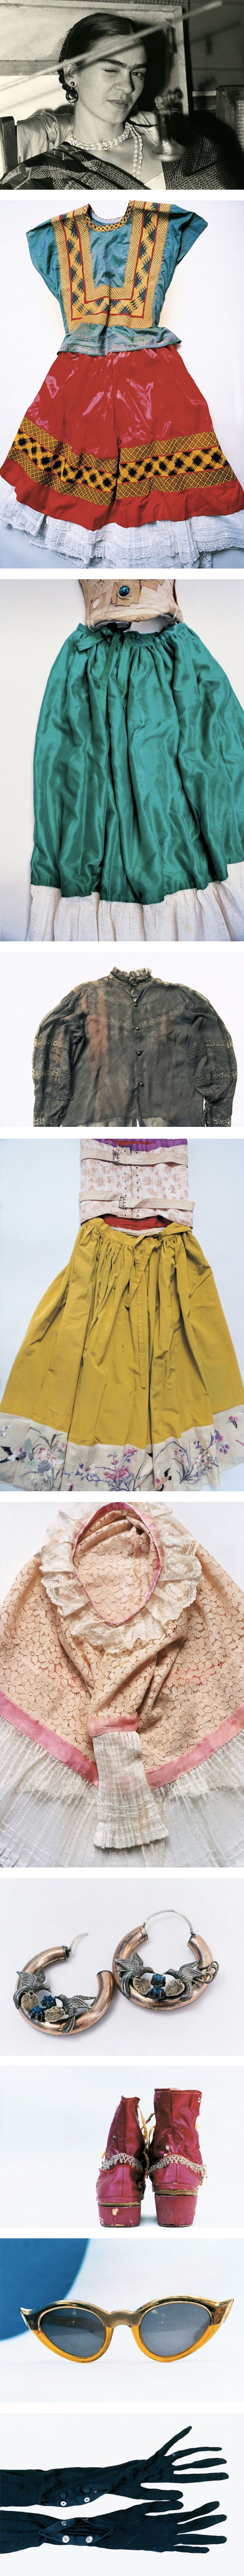 Frida Kahlo's colorful wardrobe is revealed after being hidden for 50 years